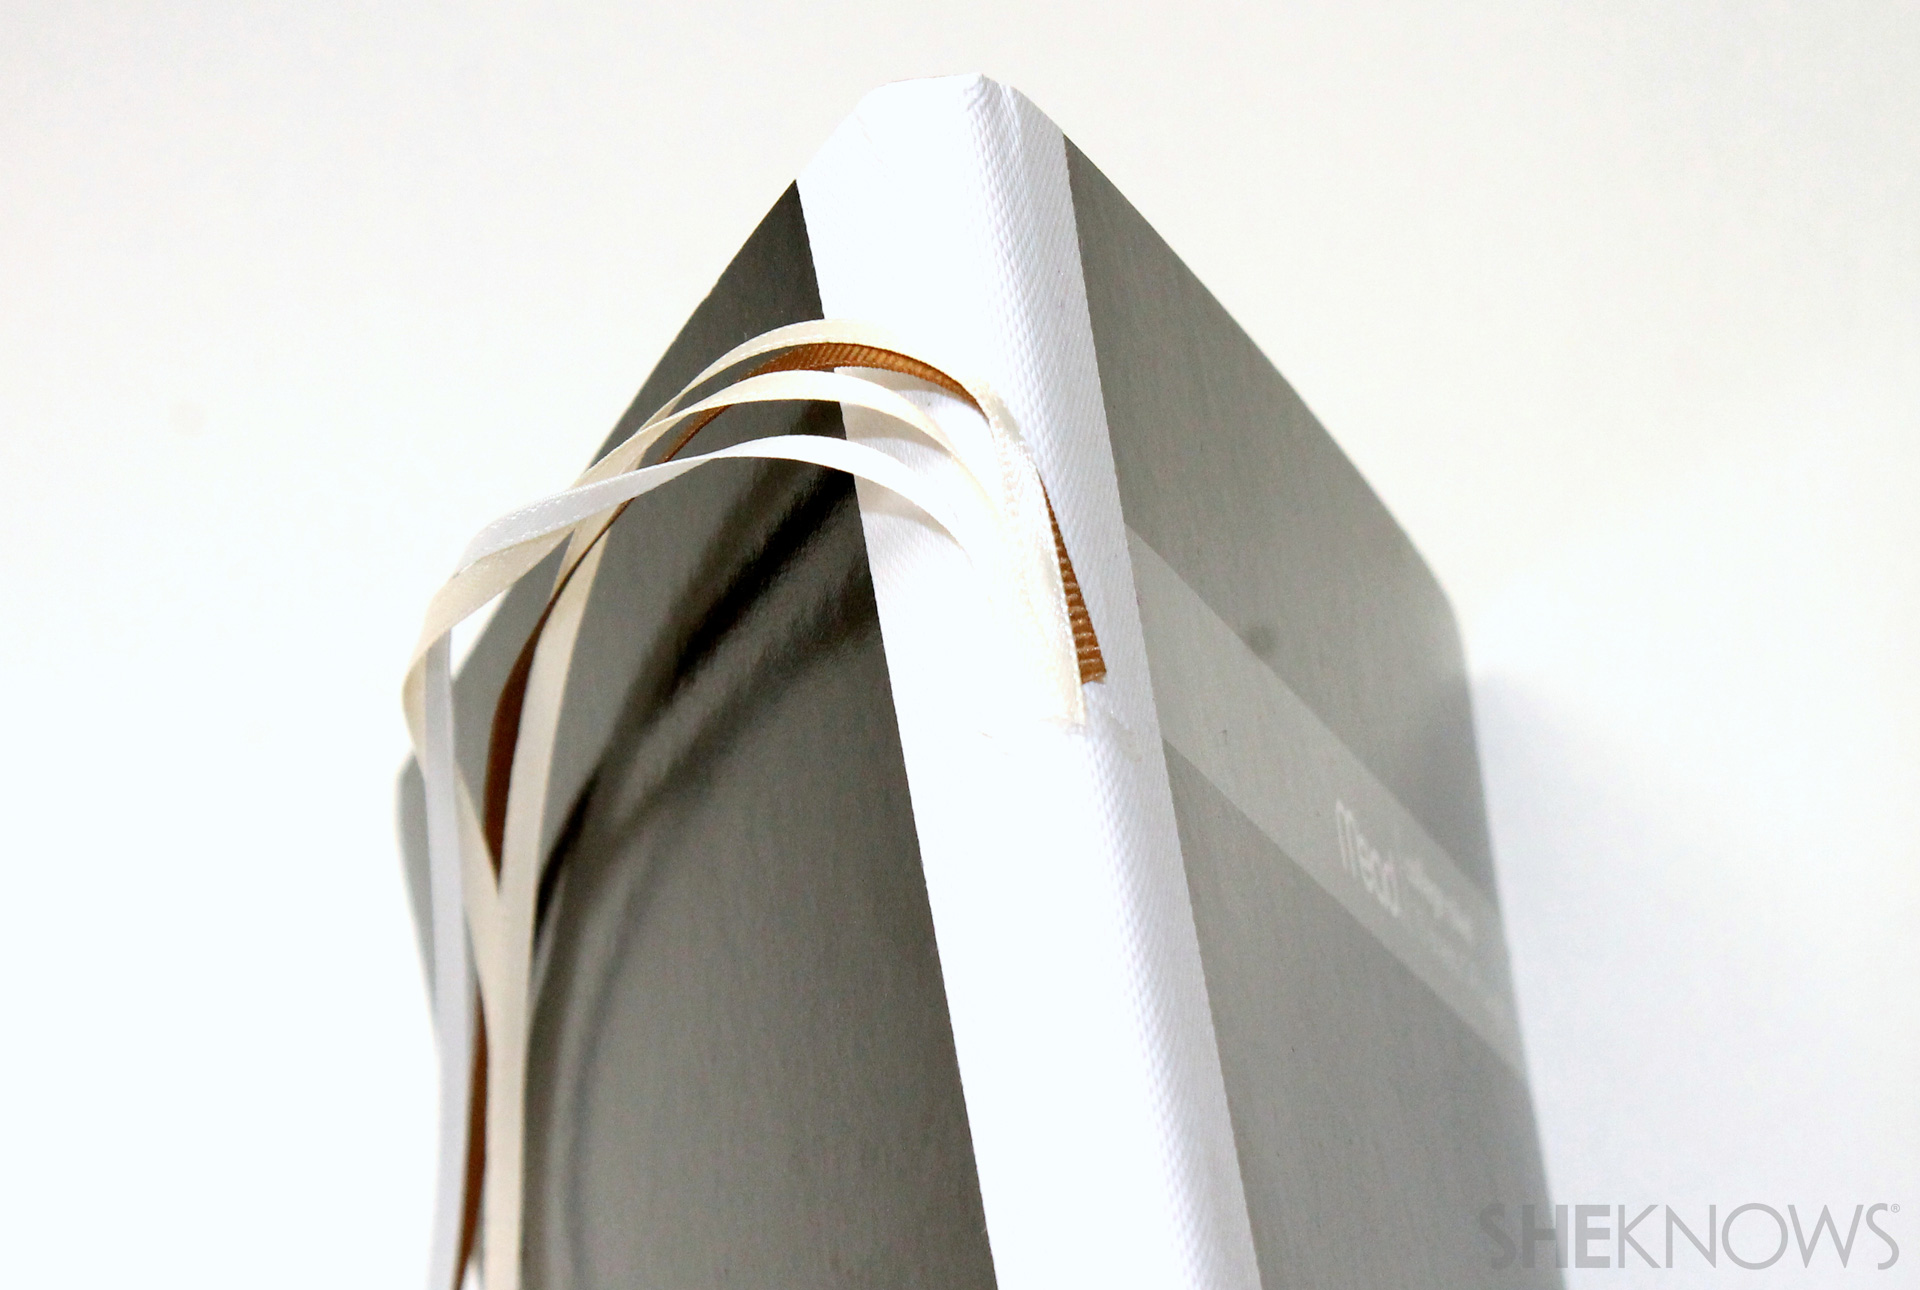 fabric covered composition book: Glue one end of the satin ribbons to the spine